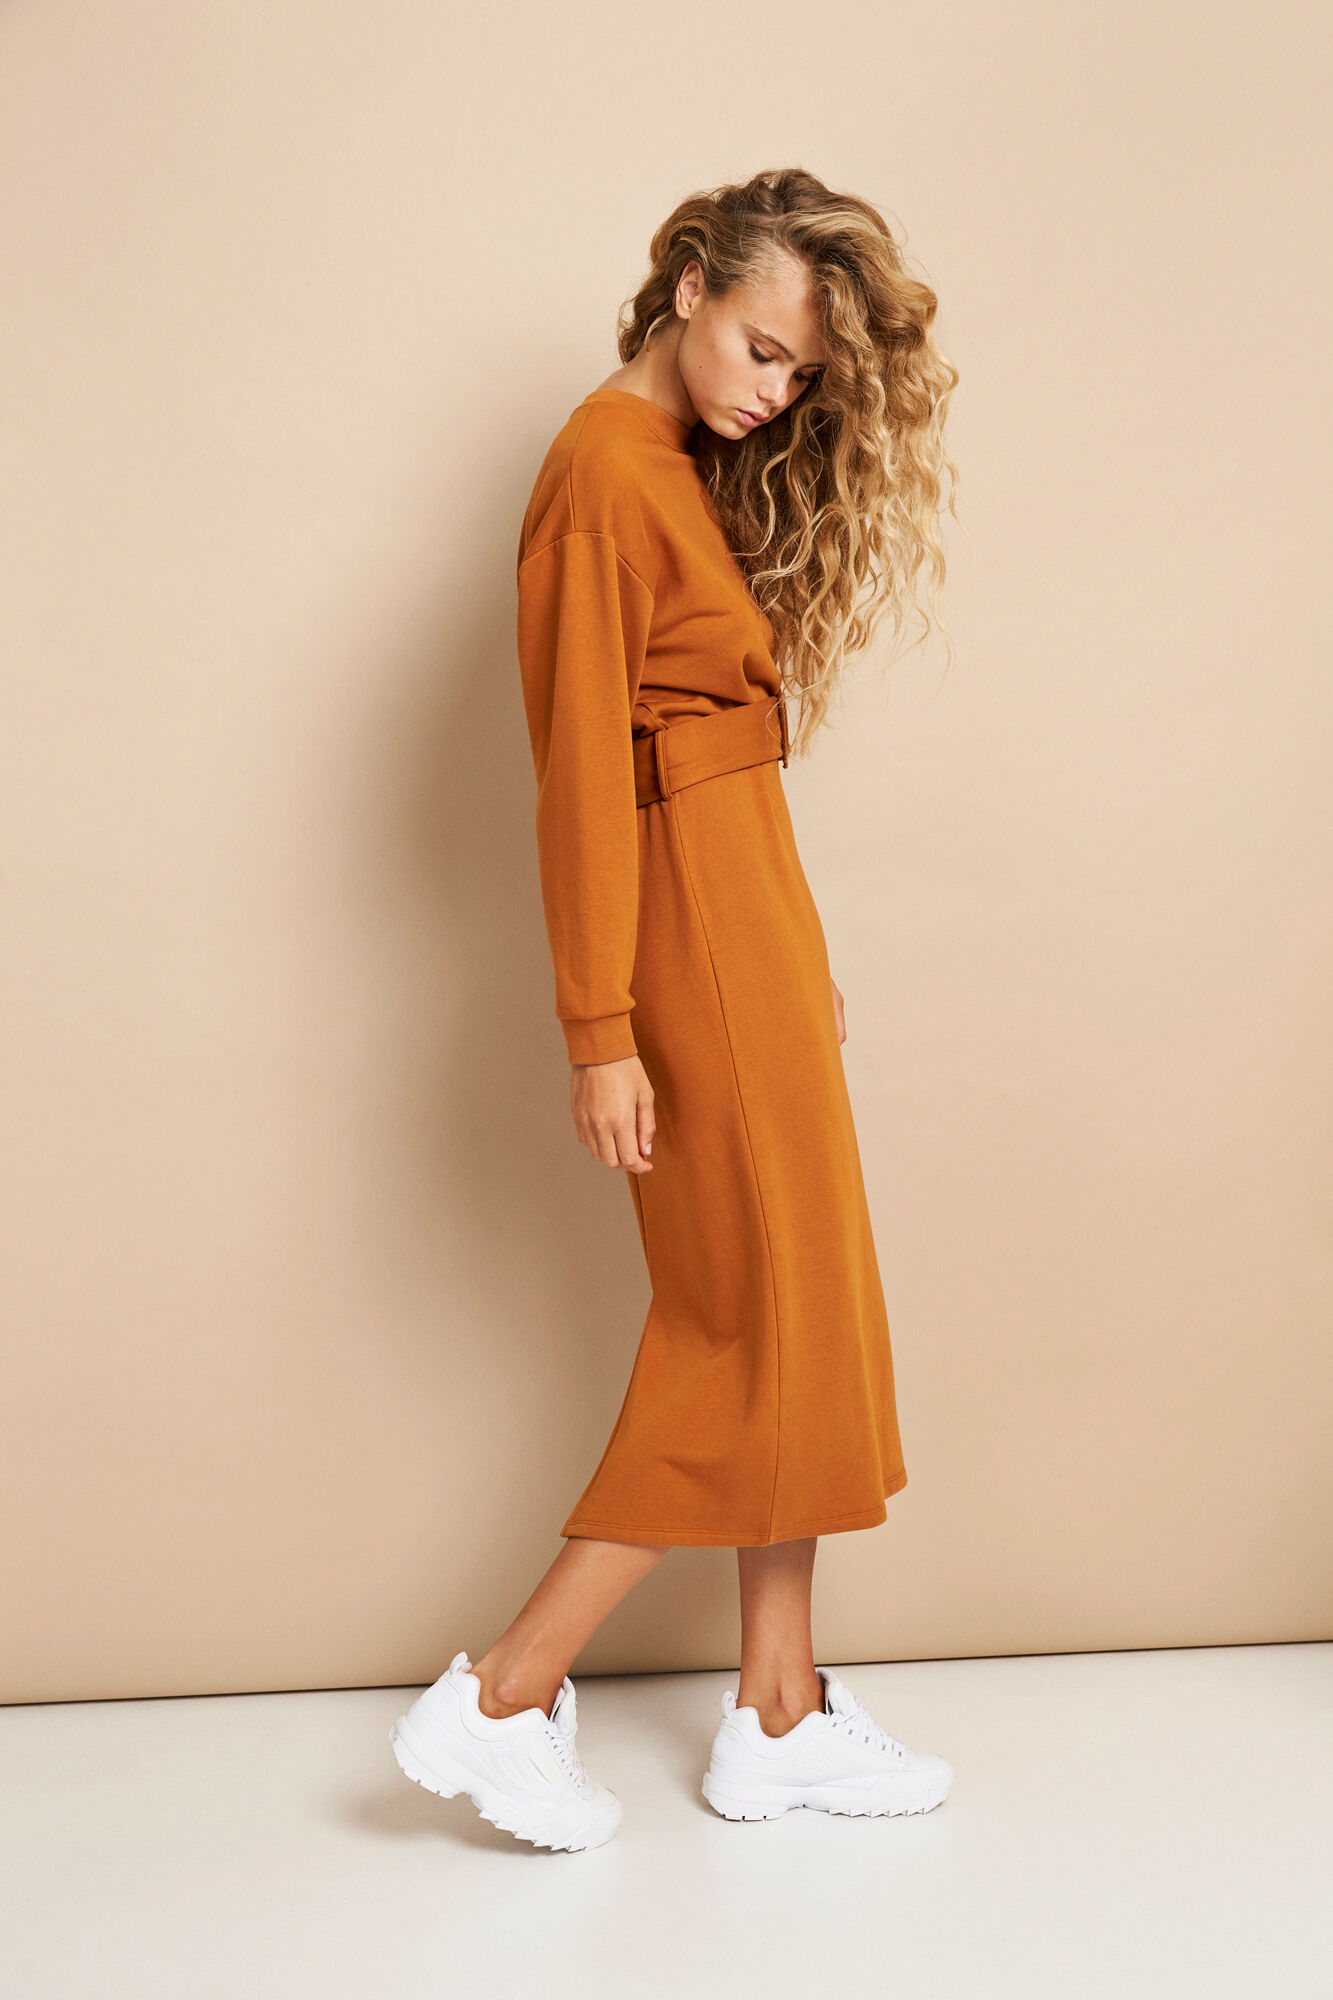 ENSKYLINE LS DRESS 5984